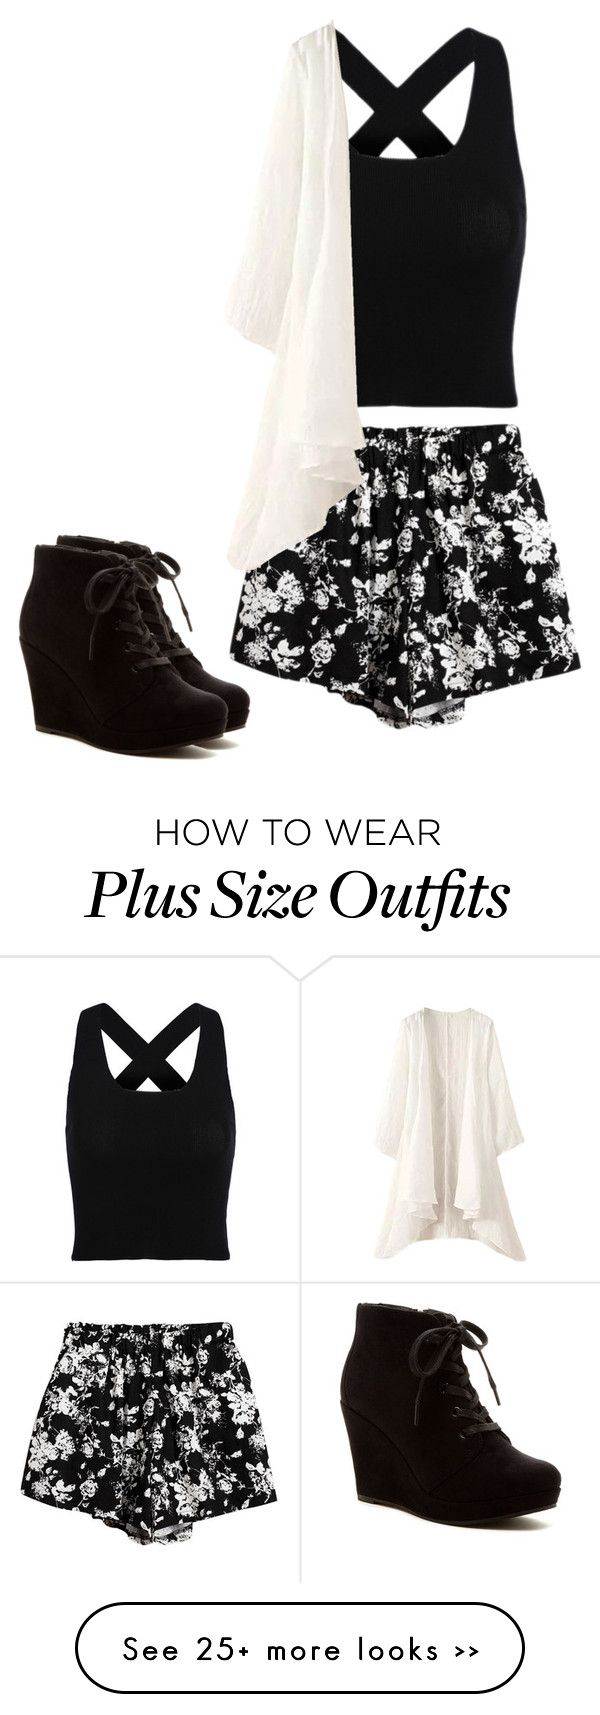 """Girlie"" by spunkyandunique368 on Polyvore"